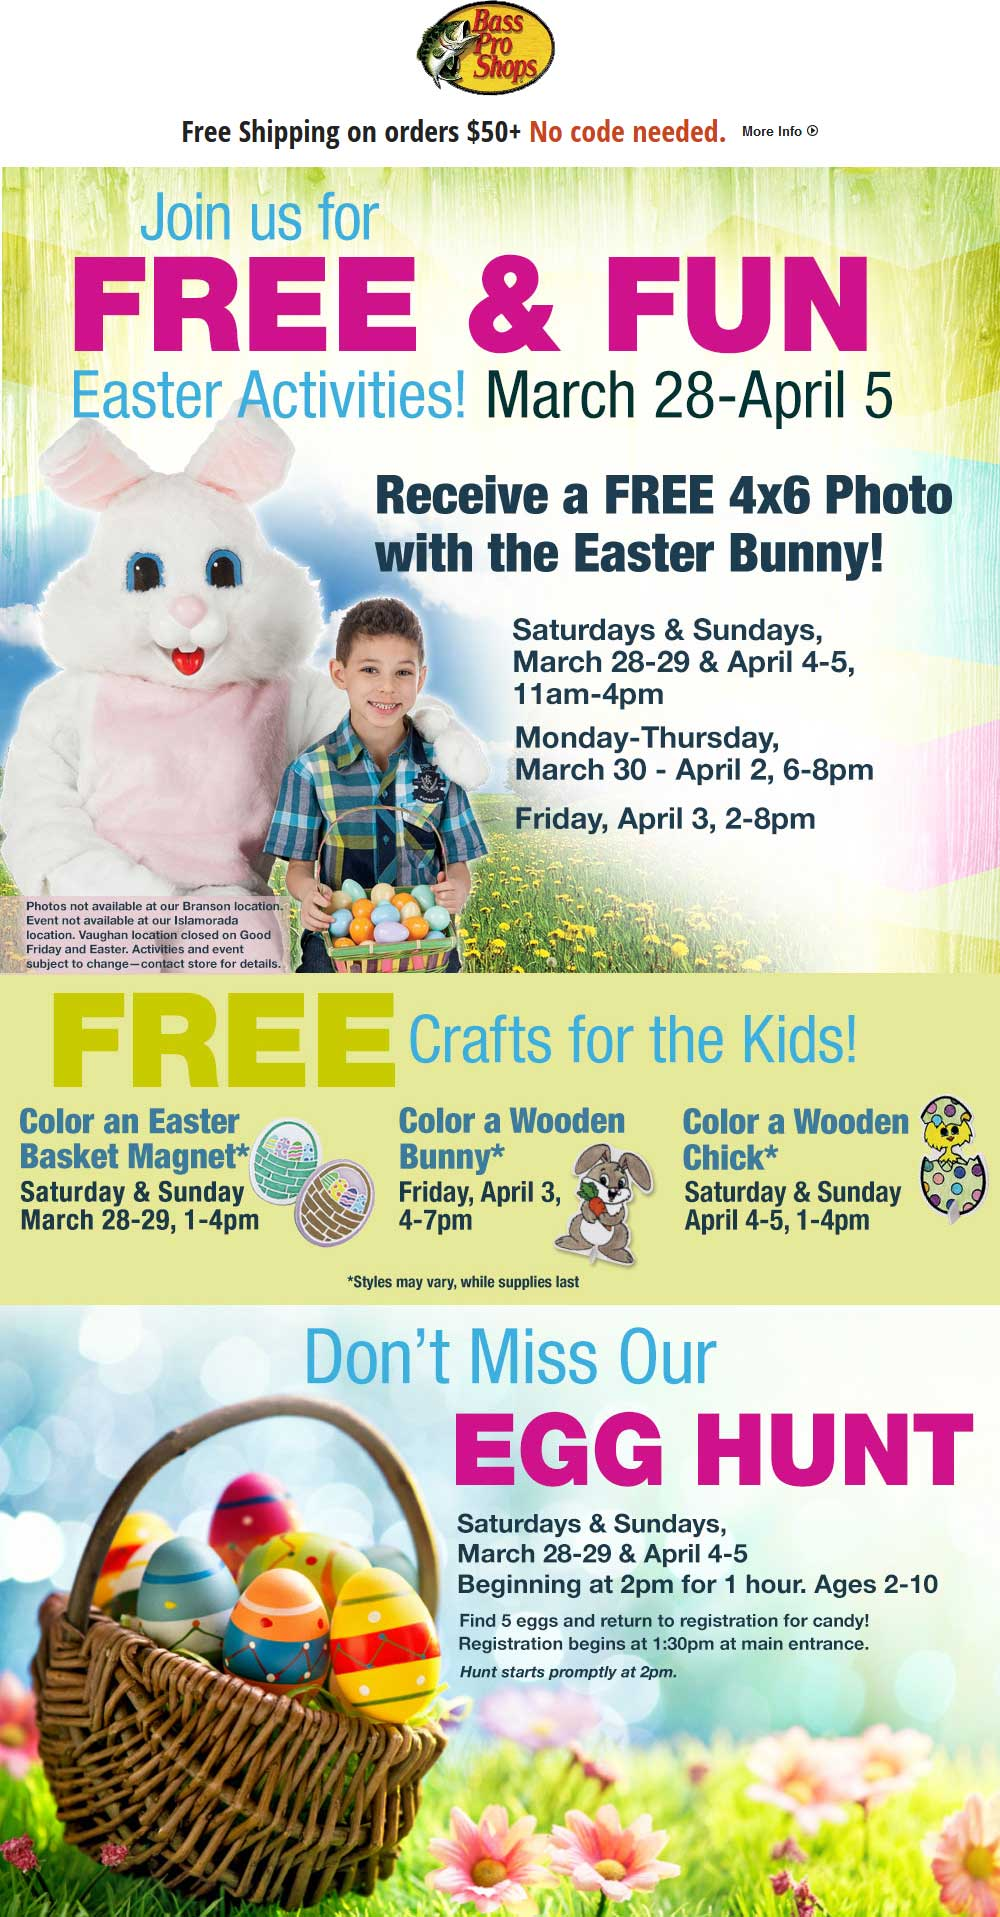 Bass Pro Shops Coupon September 2018 Free photo with Easter bunny, crafts & egg hunt at Bass Pro Shops